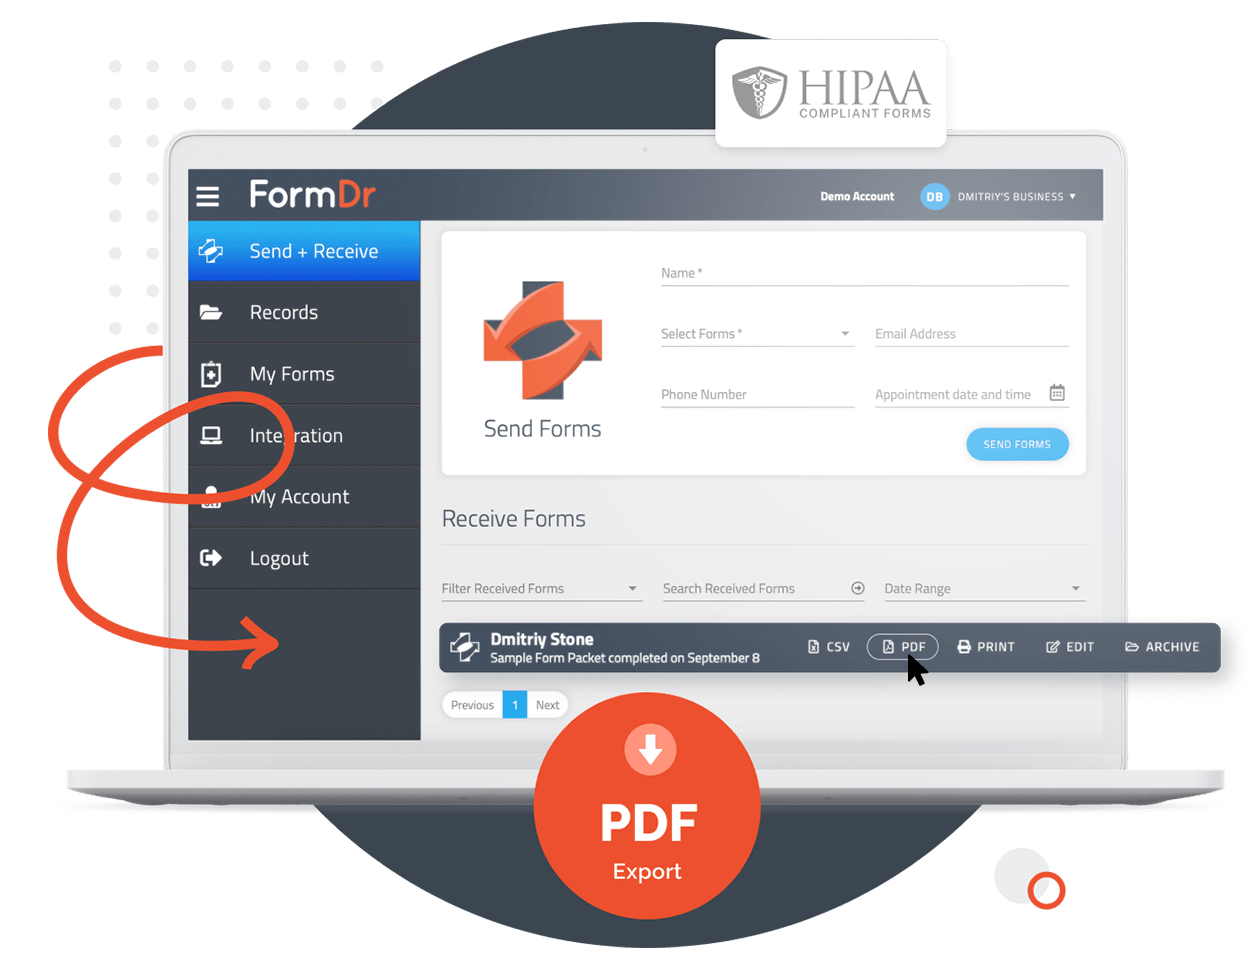 Export HIPAA Compliant Forms To PDF